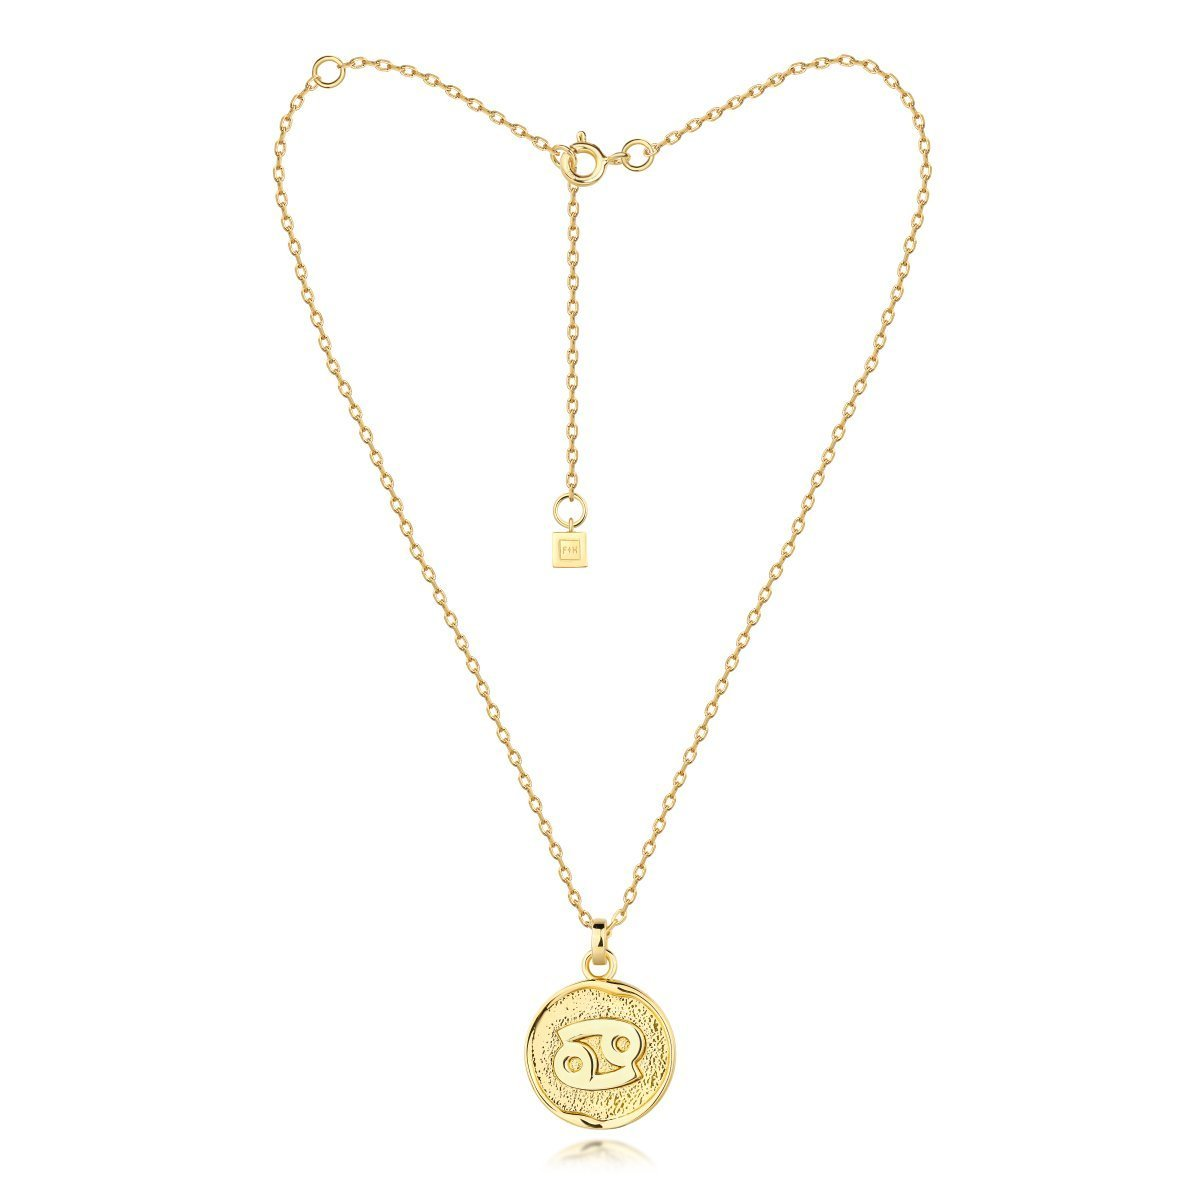 f + h jewellery - cancer necklace - gold